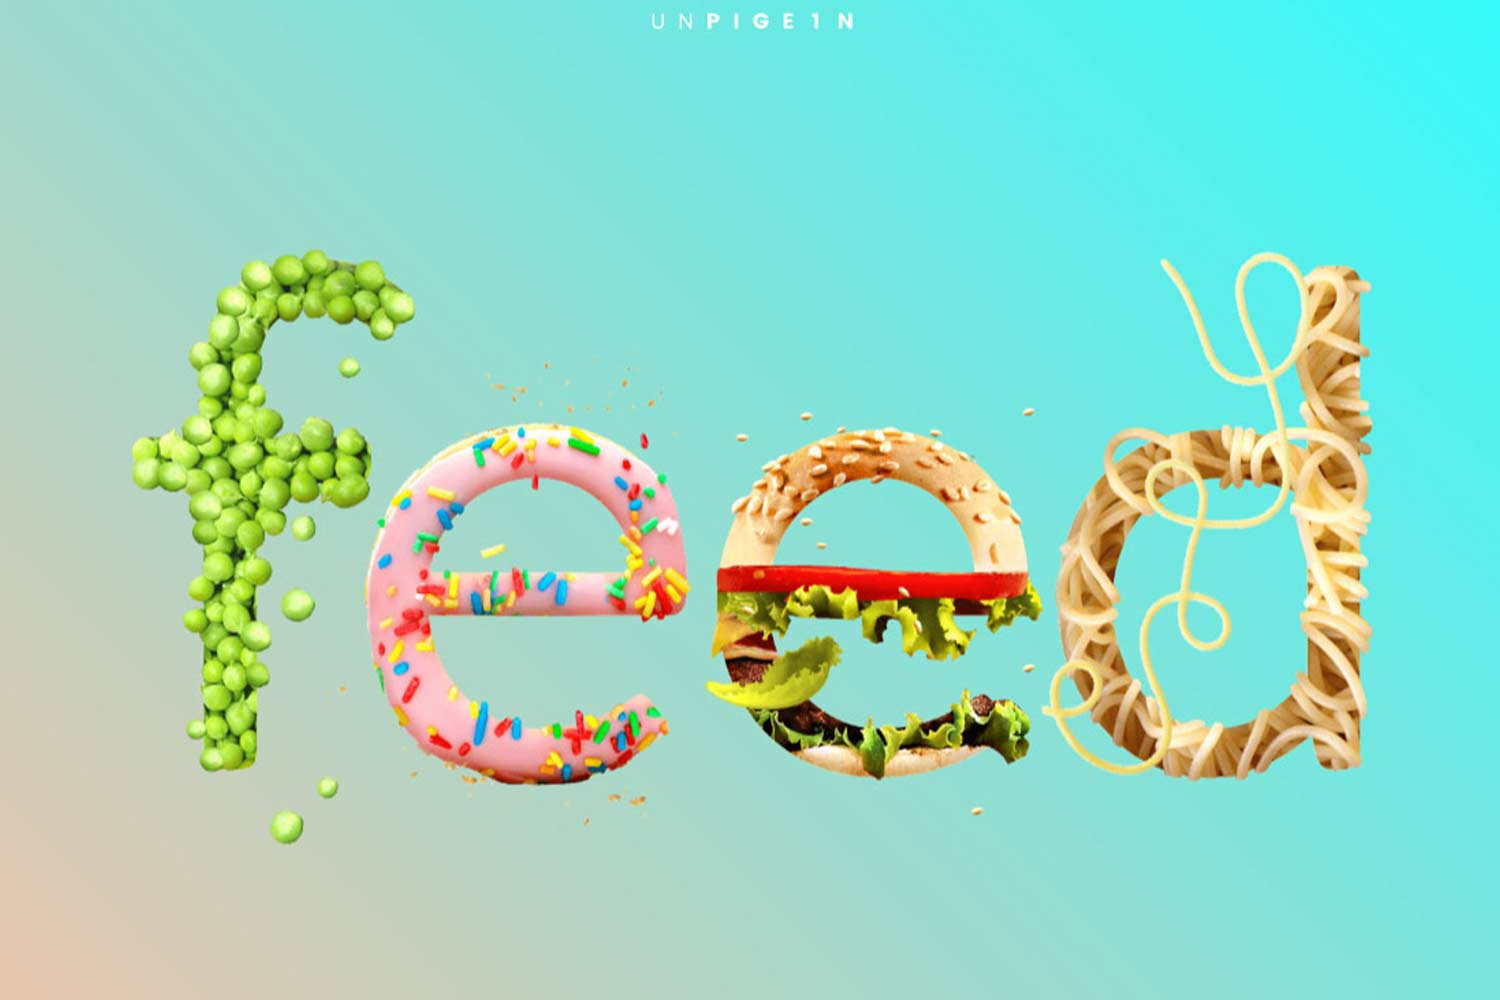 the word feed filled with images of food